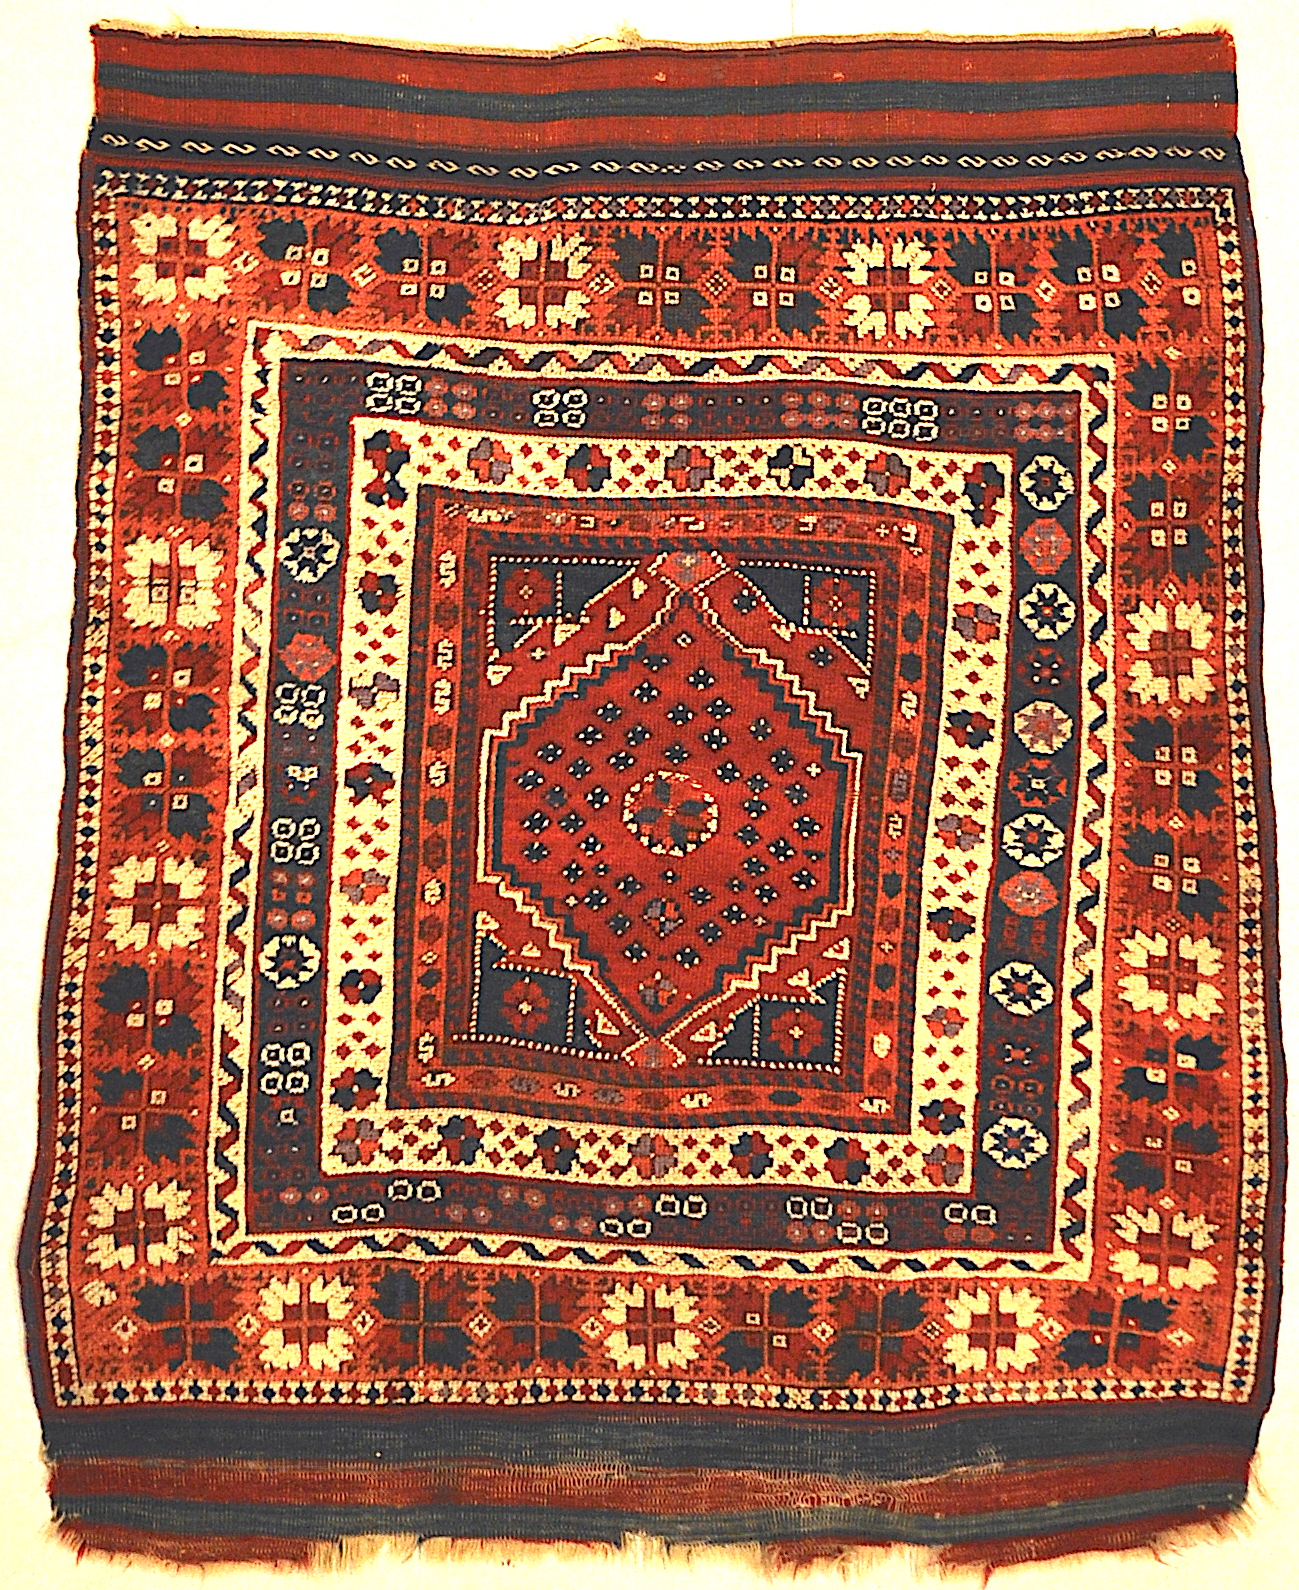 Antique Turkish Bergama Rug Woven Circa 1880 Genuine Authentic Woven Carpet Art Santa Barbara Design Center and Rugs and More